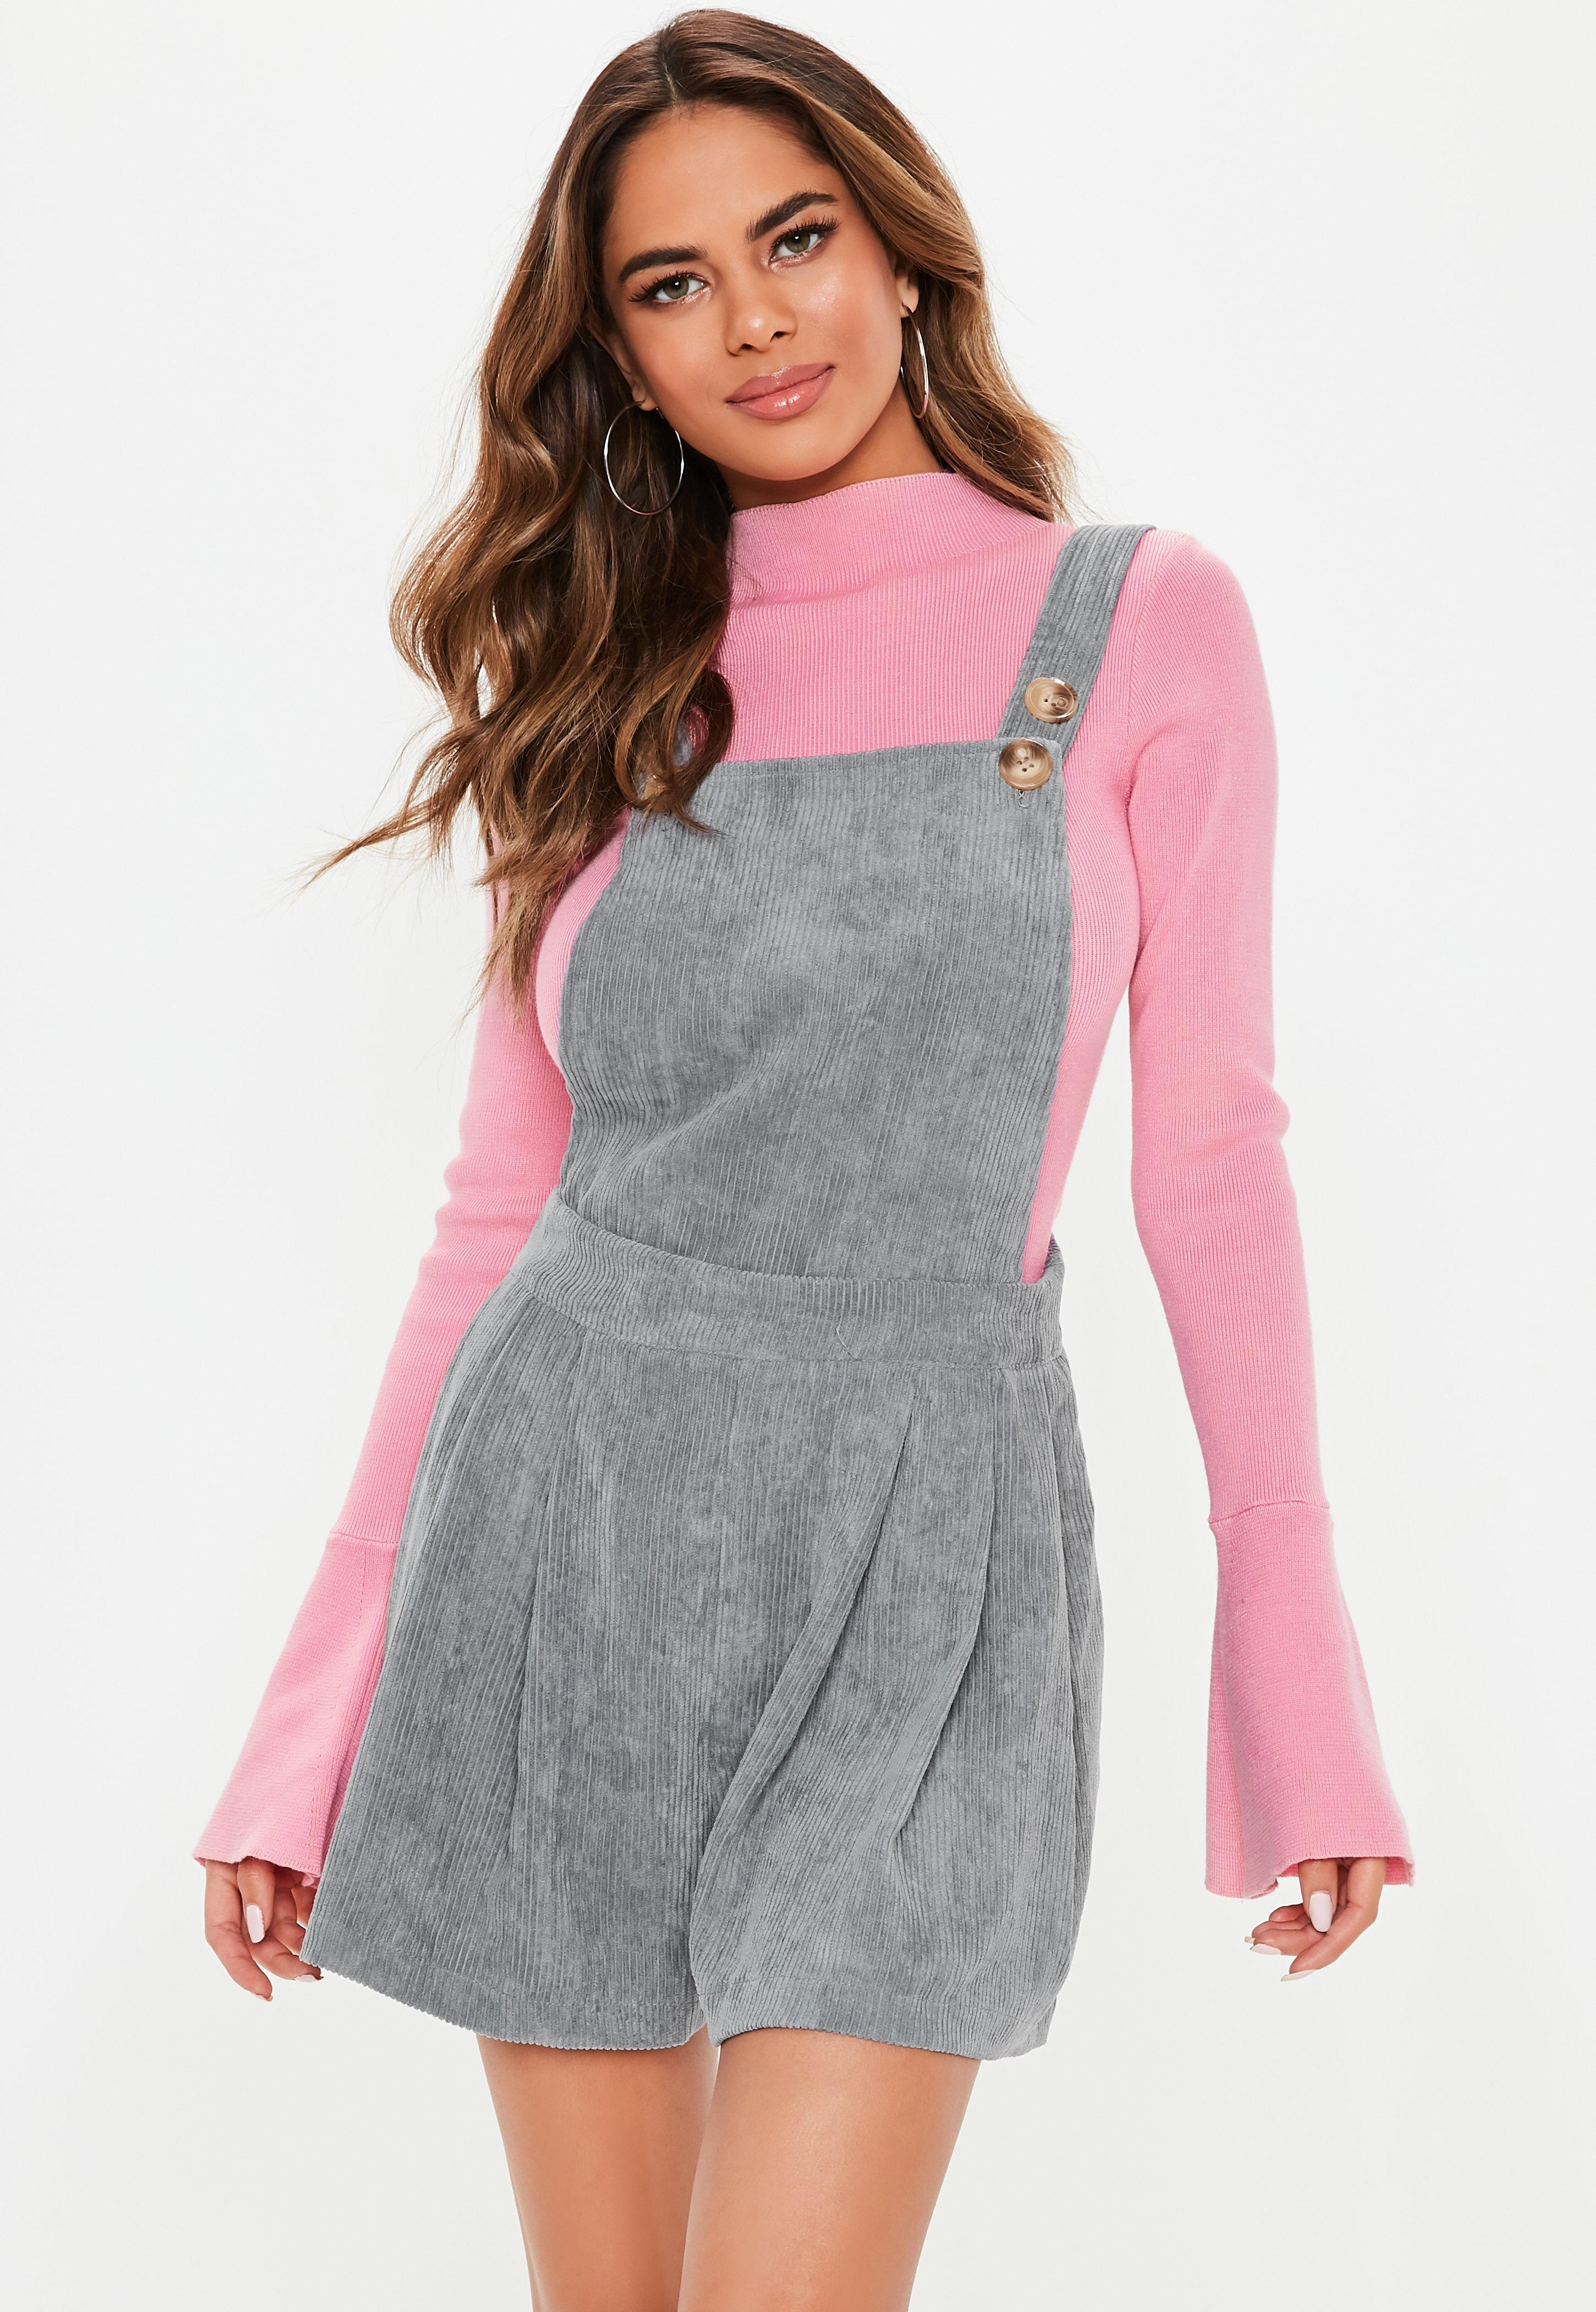 69ffad83ae50 Lyst - Missguided Gray Cord Dungaree Romper in Gray